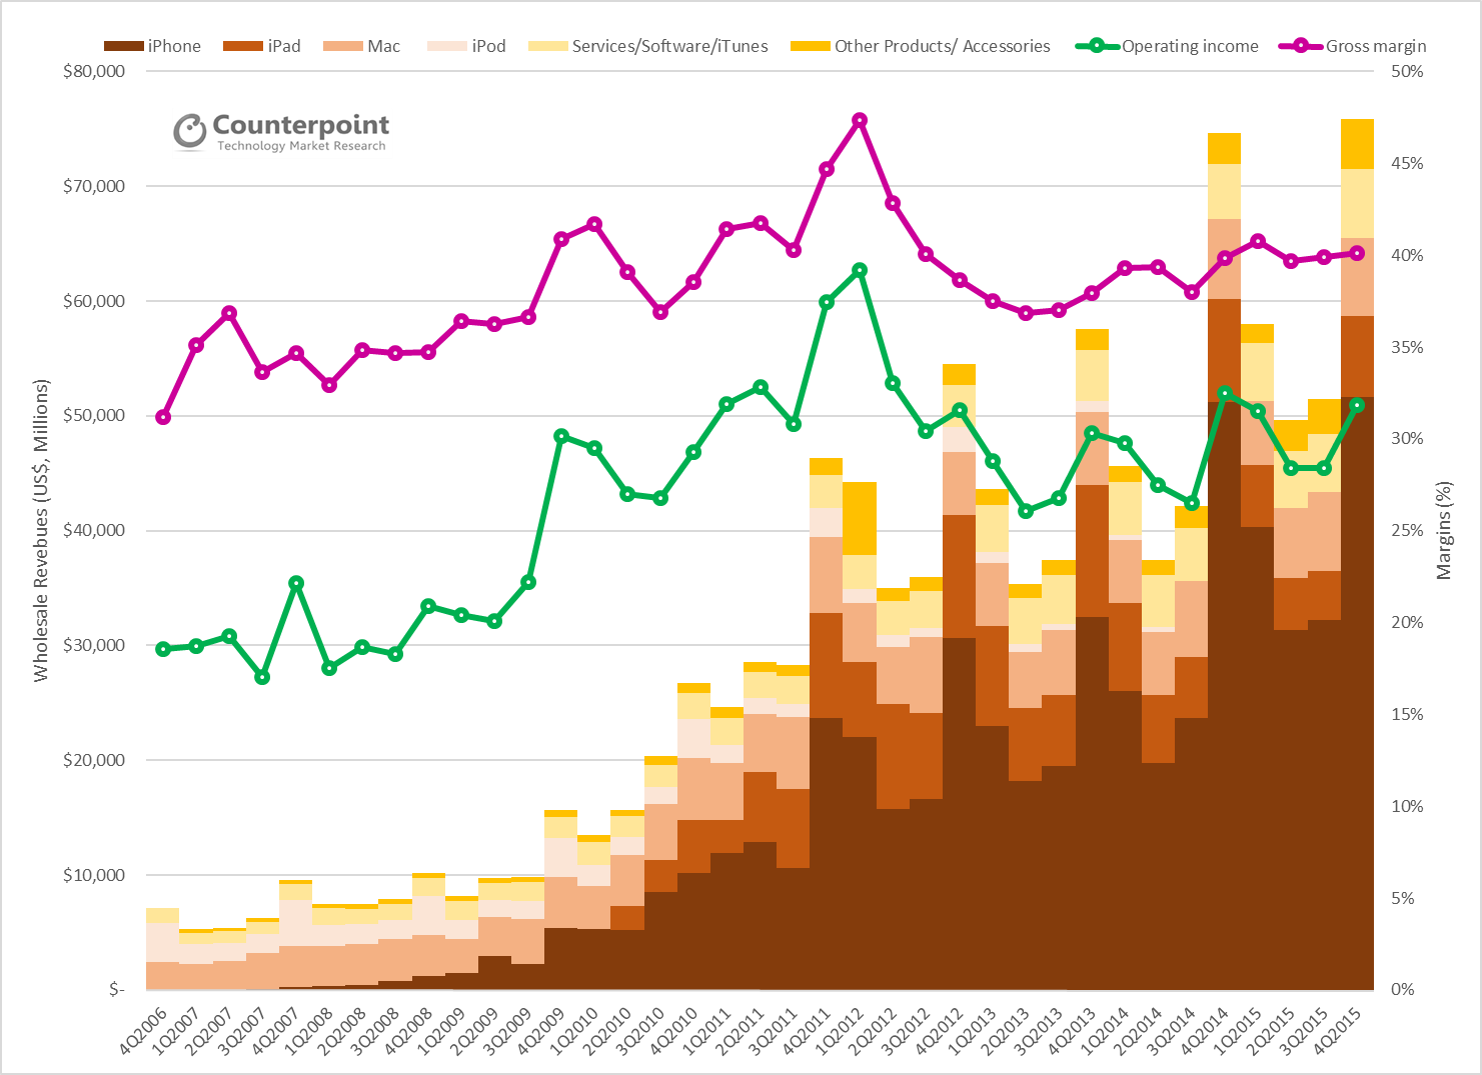 counterpoint-apple-revenues-by-product-segment-and-total-margins